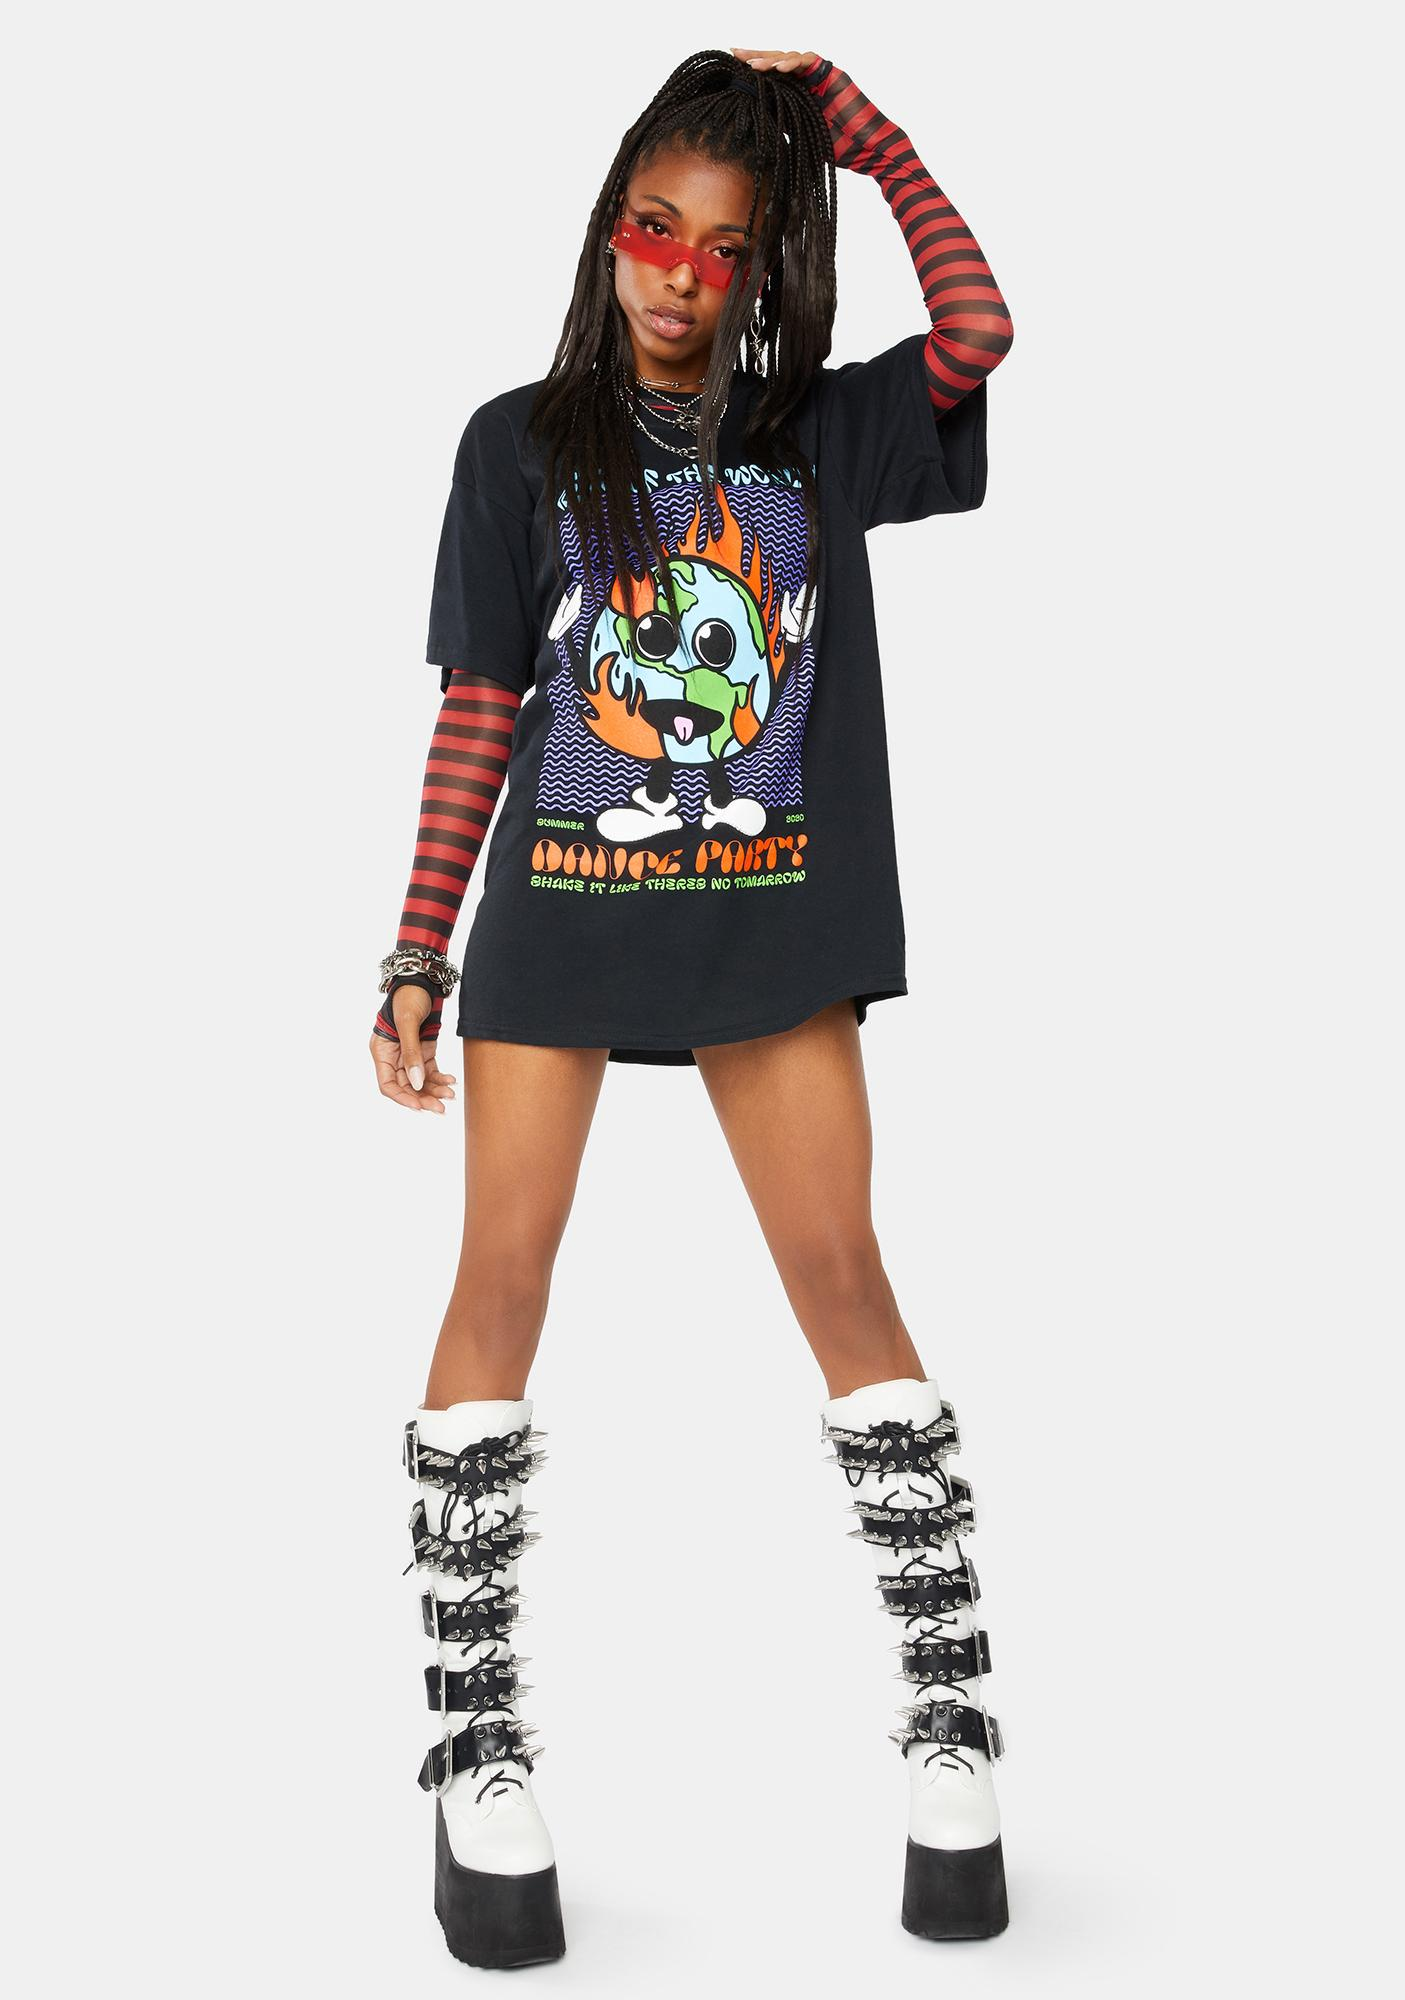 Partee Supplies Dance Party Graphic Tee